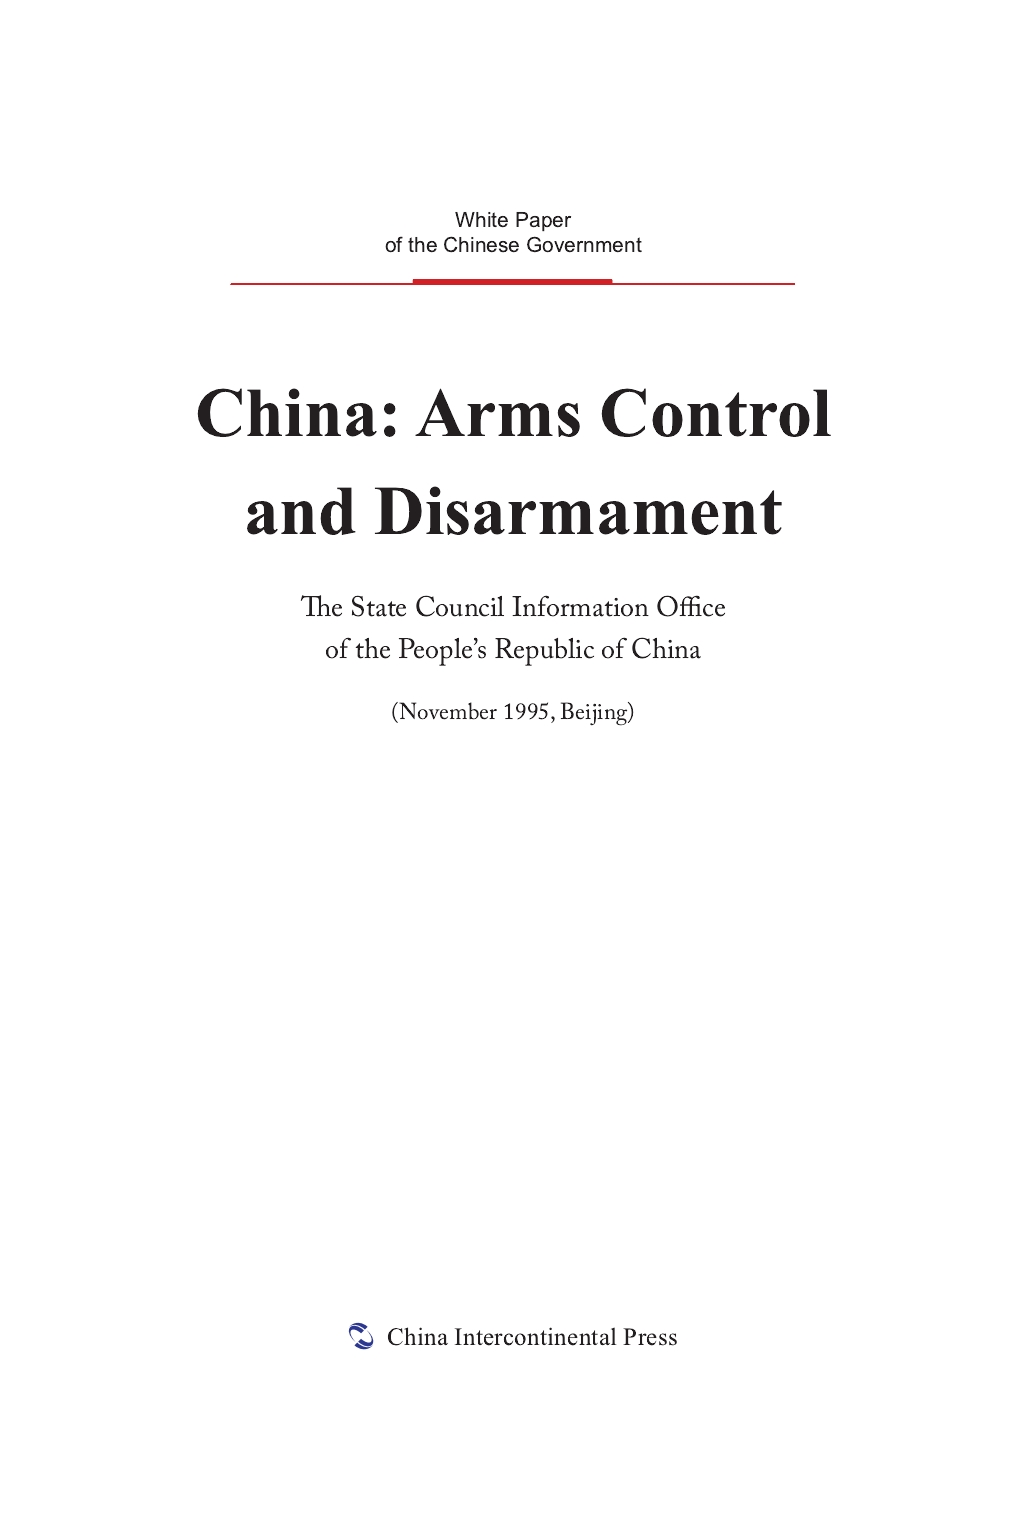 China:Arms Control and Disarmament